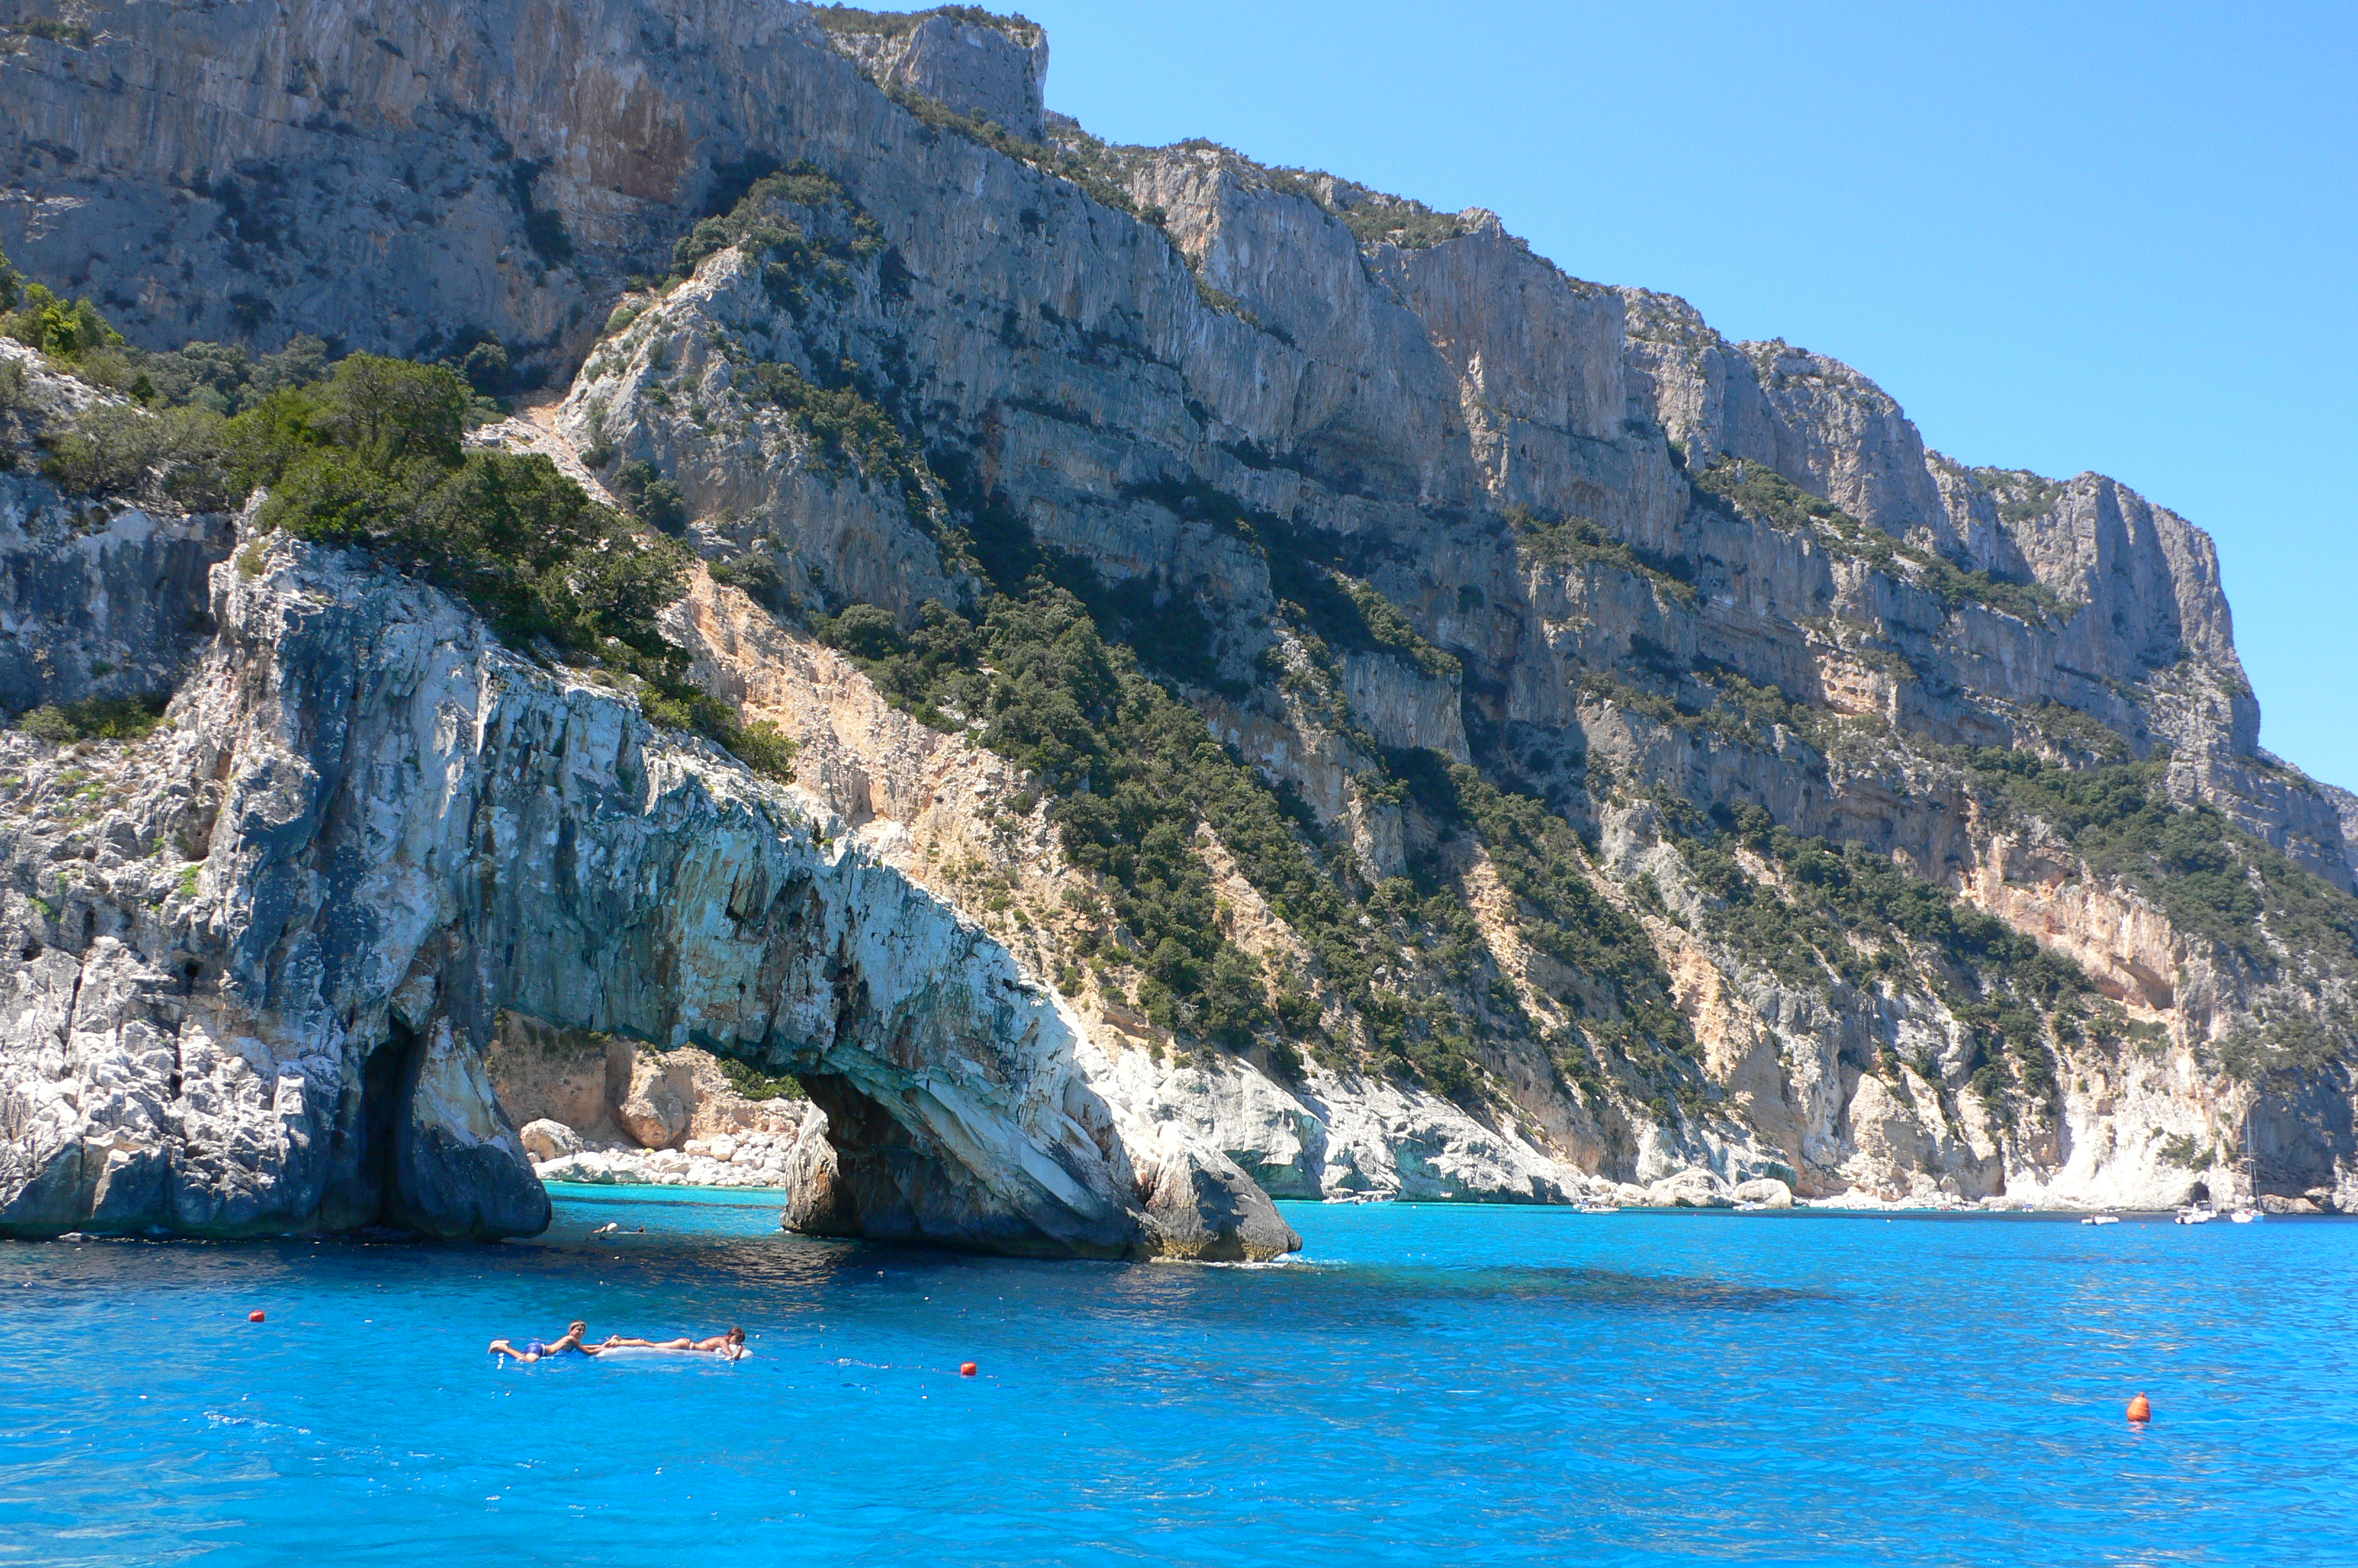 image with the rocks of cala goloritzé in sardinia from a guide to cala gonone tour boat